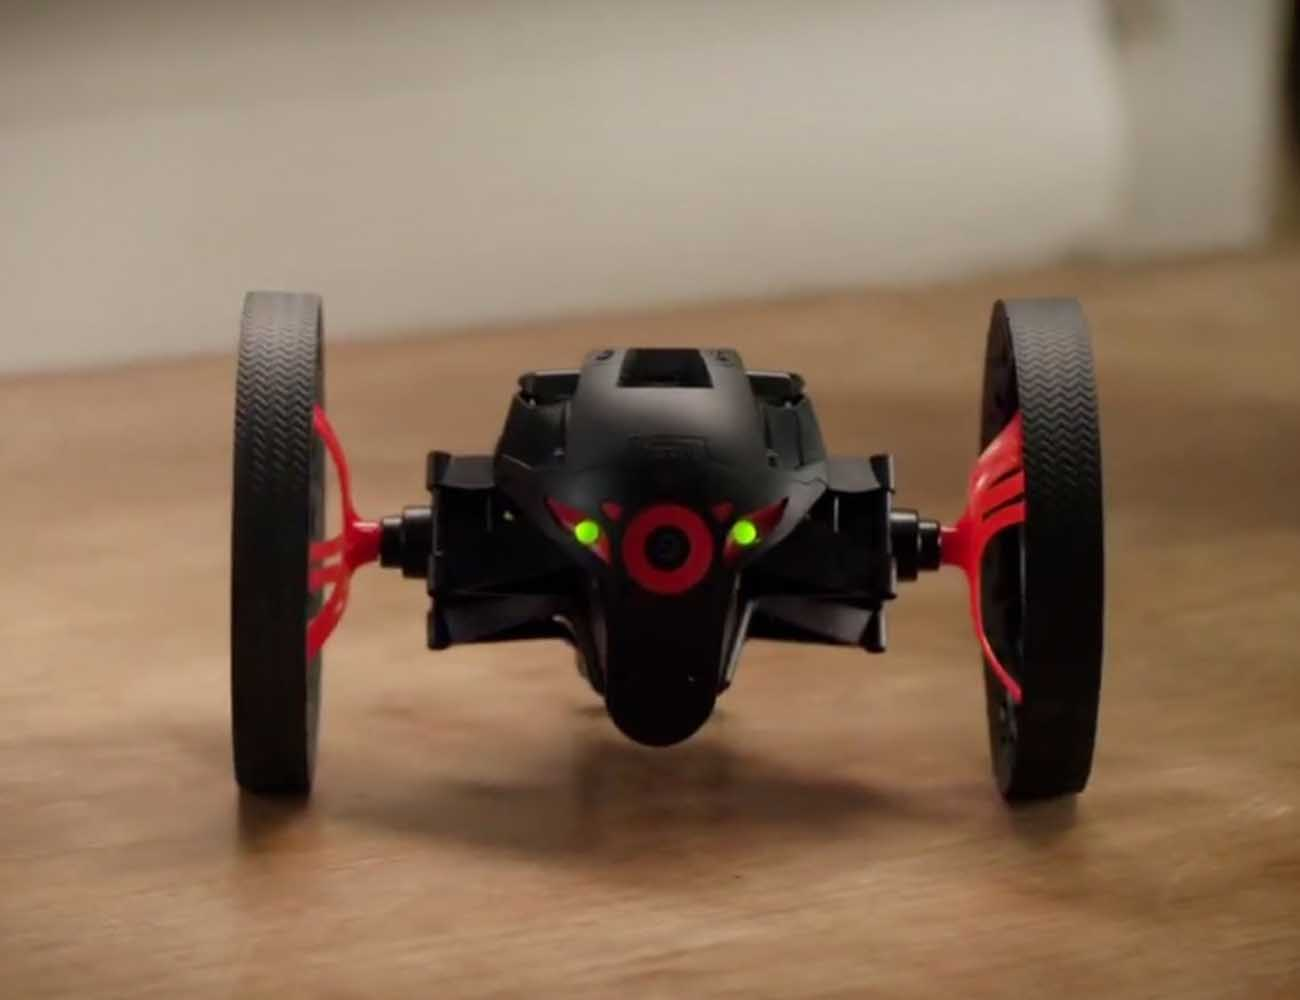 Jumping Night MiniDrone by Parrot